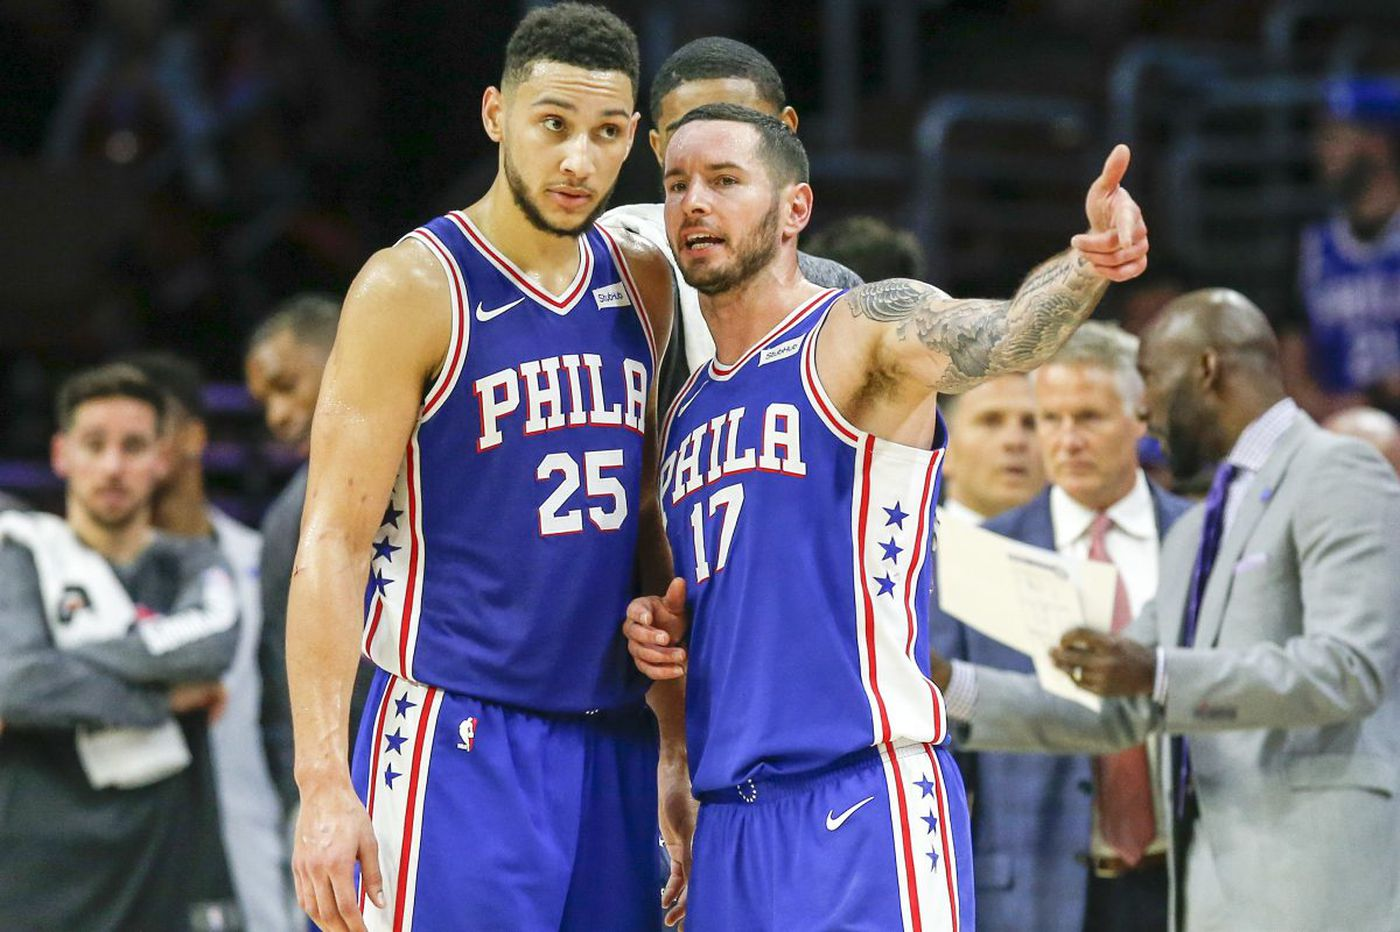 Sixers' JJ Redick weighs in on Ben Simmons' jump shot form, whether he should switch hands